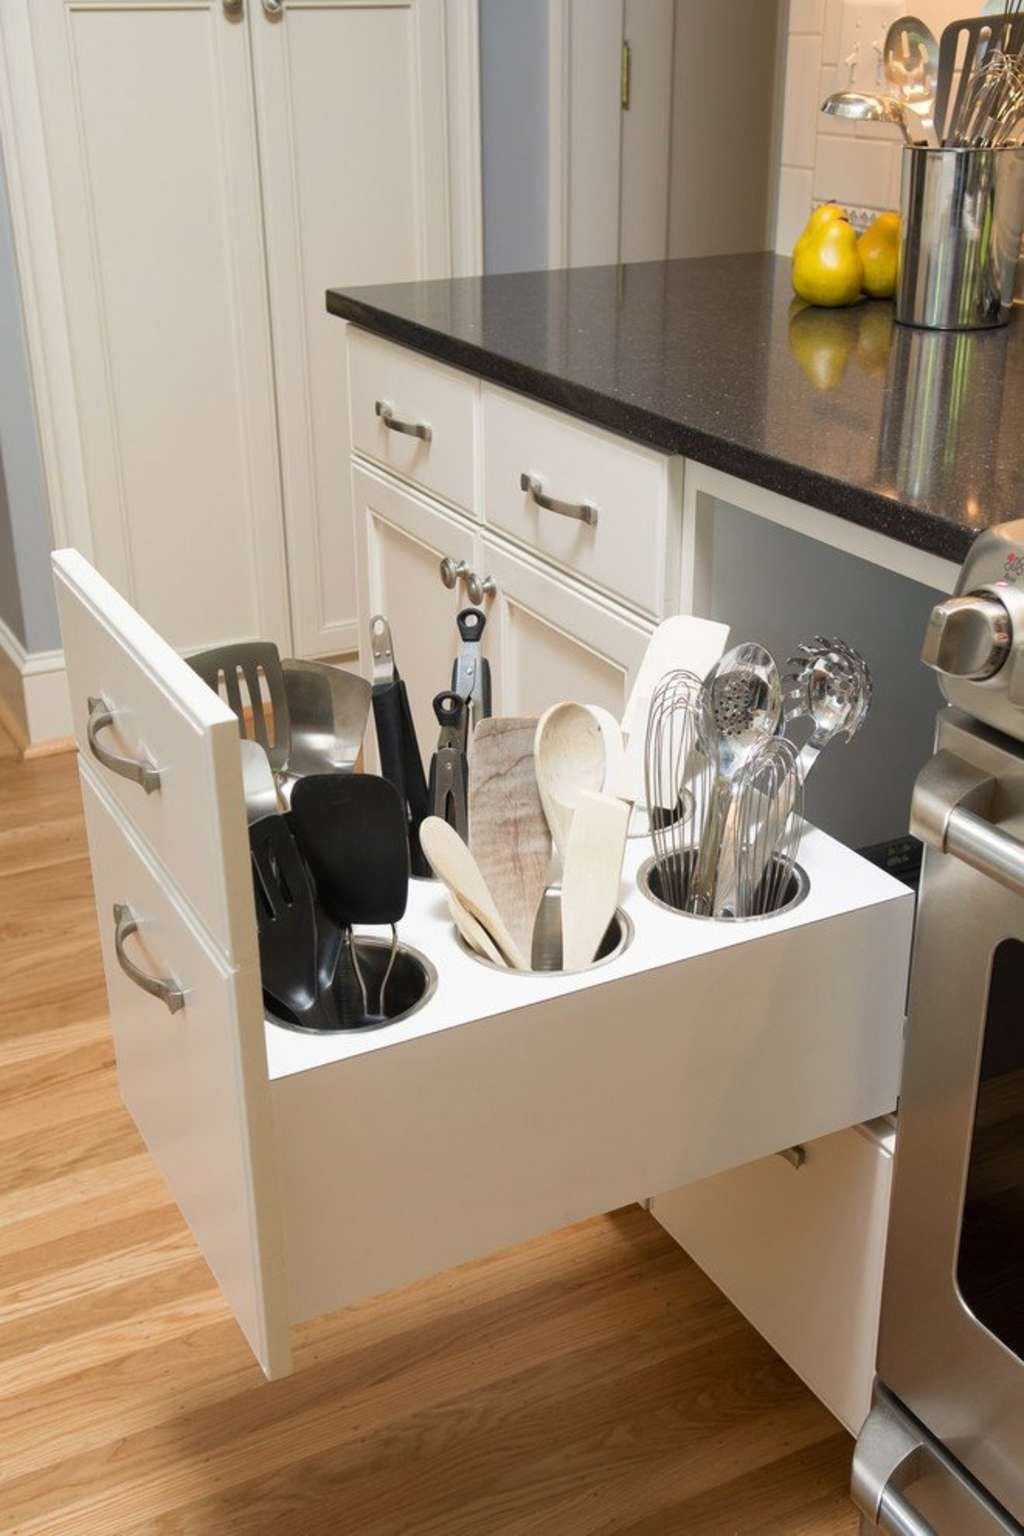 10 Clever Hidden Storage Solutions You'll Wish You